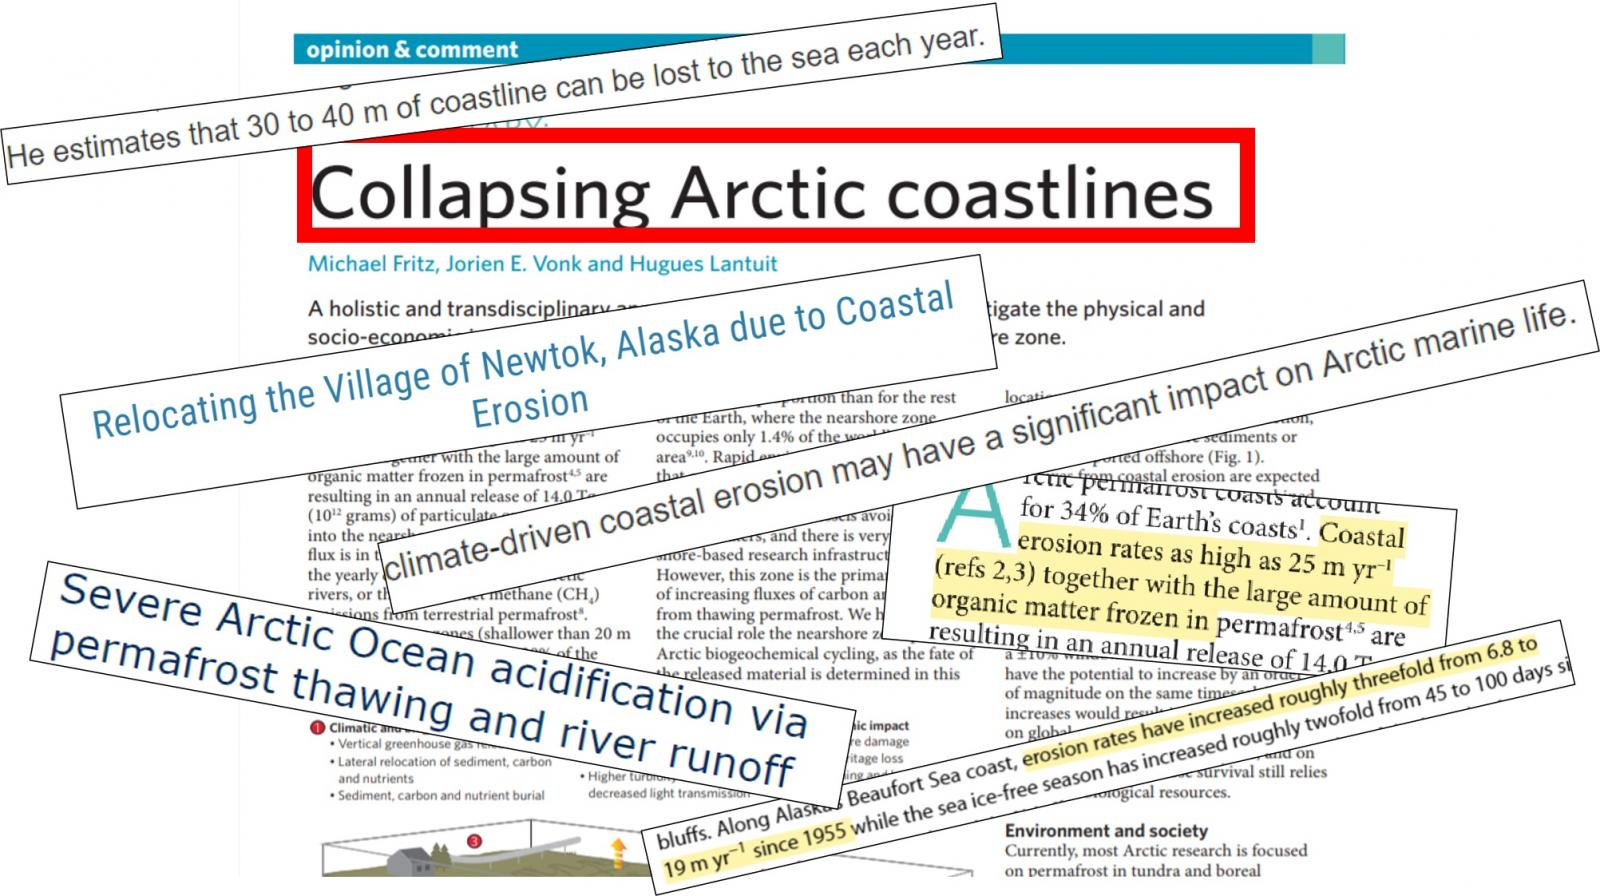 Dramatic headlines about collapsing Arctic Ice coastlines